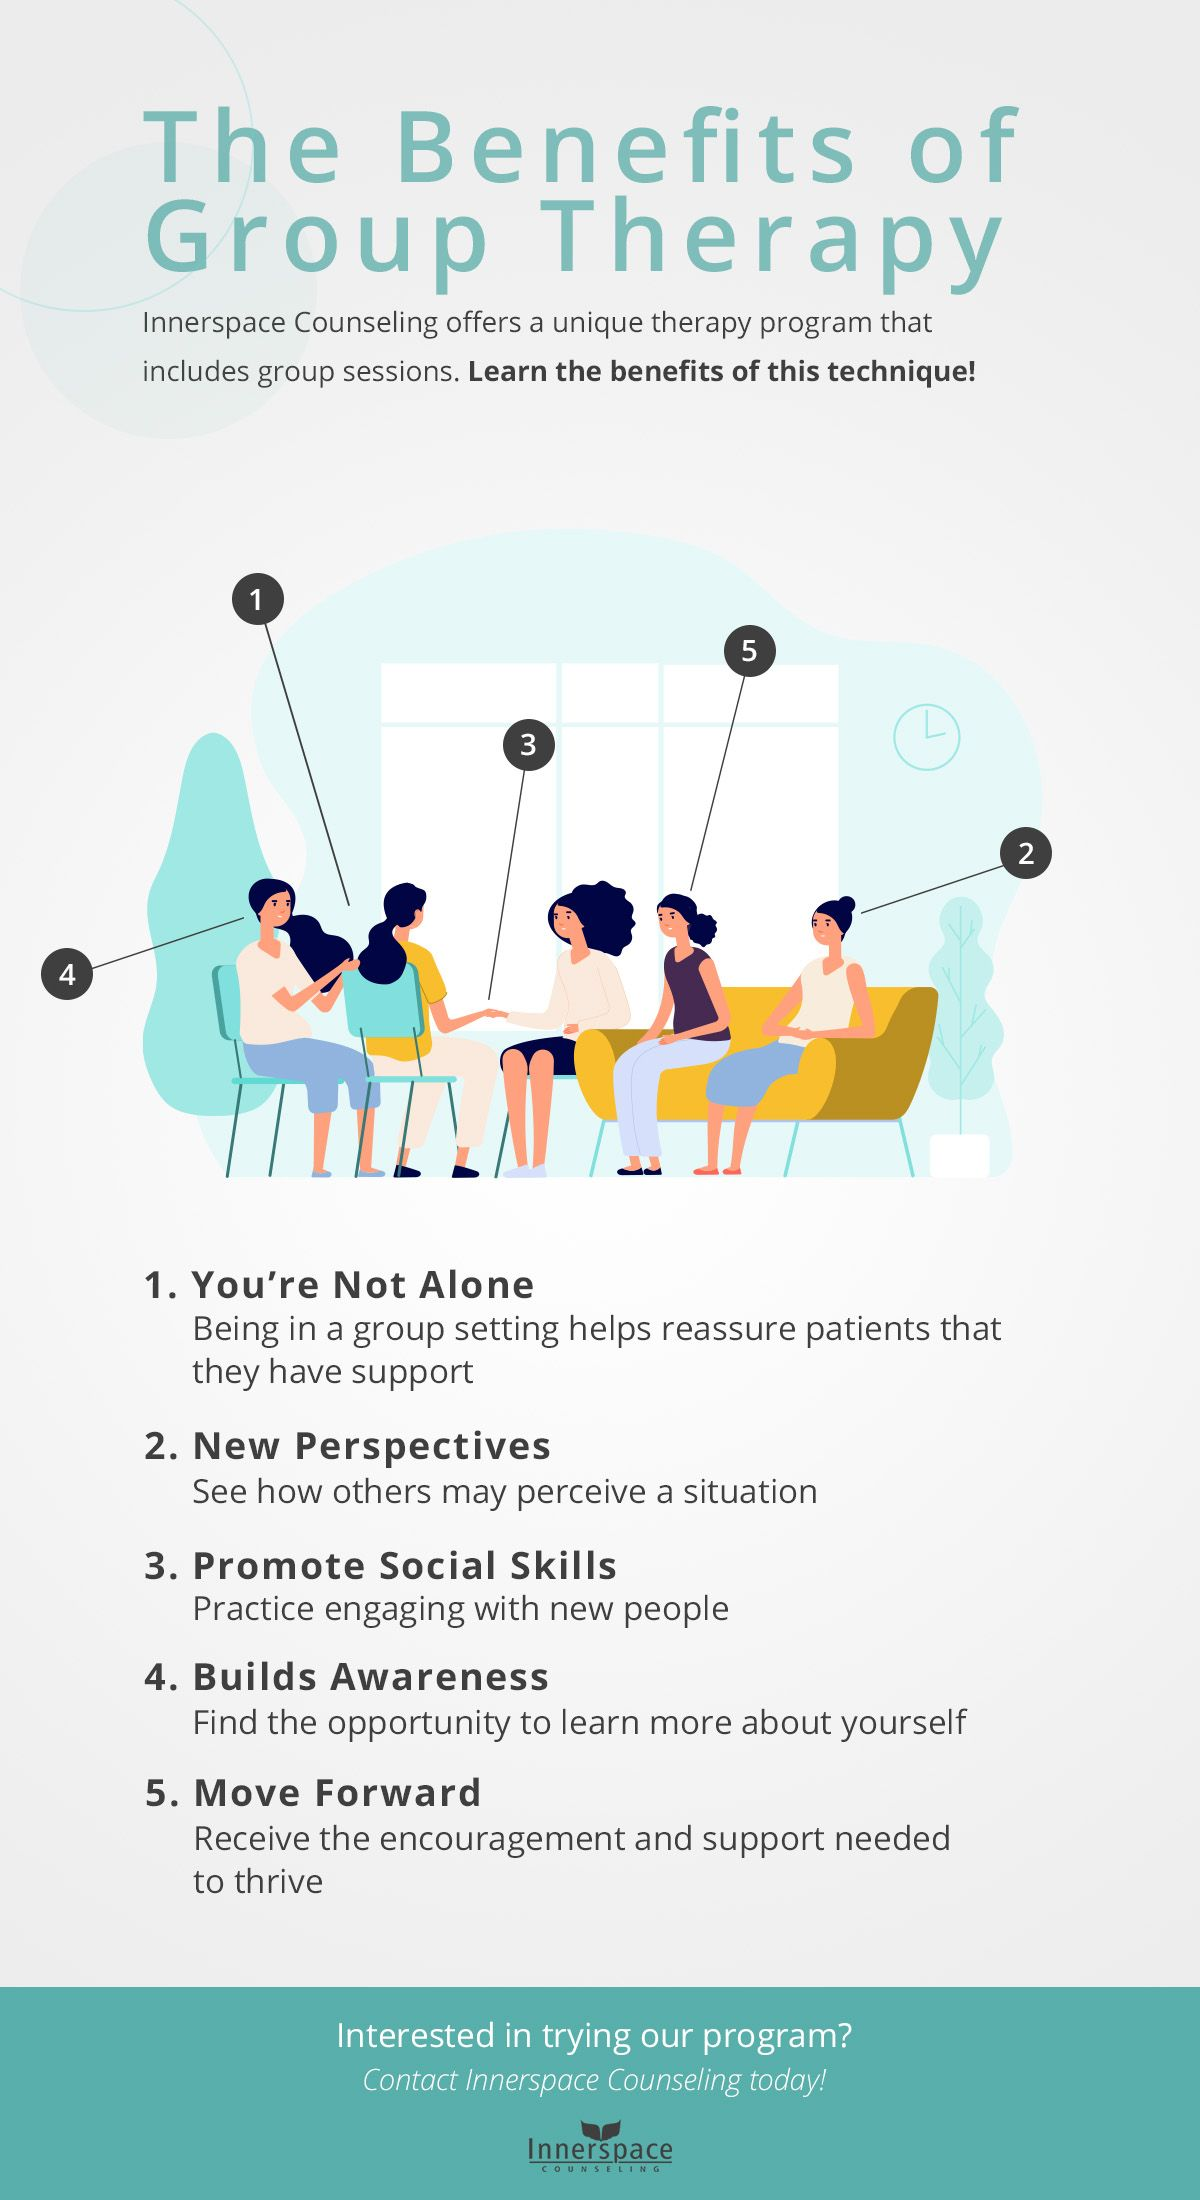 2020-02-13-Infographic-Benefits-of-Group-Therapy-5e459c1065cba.jpg